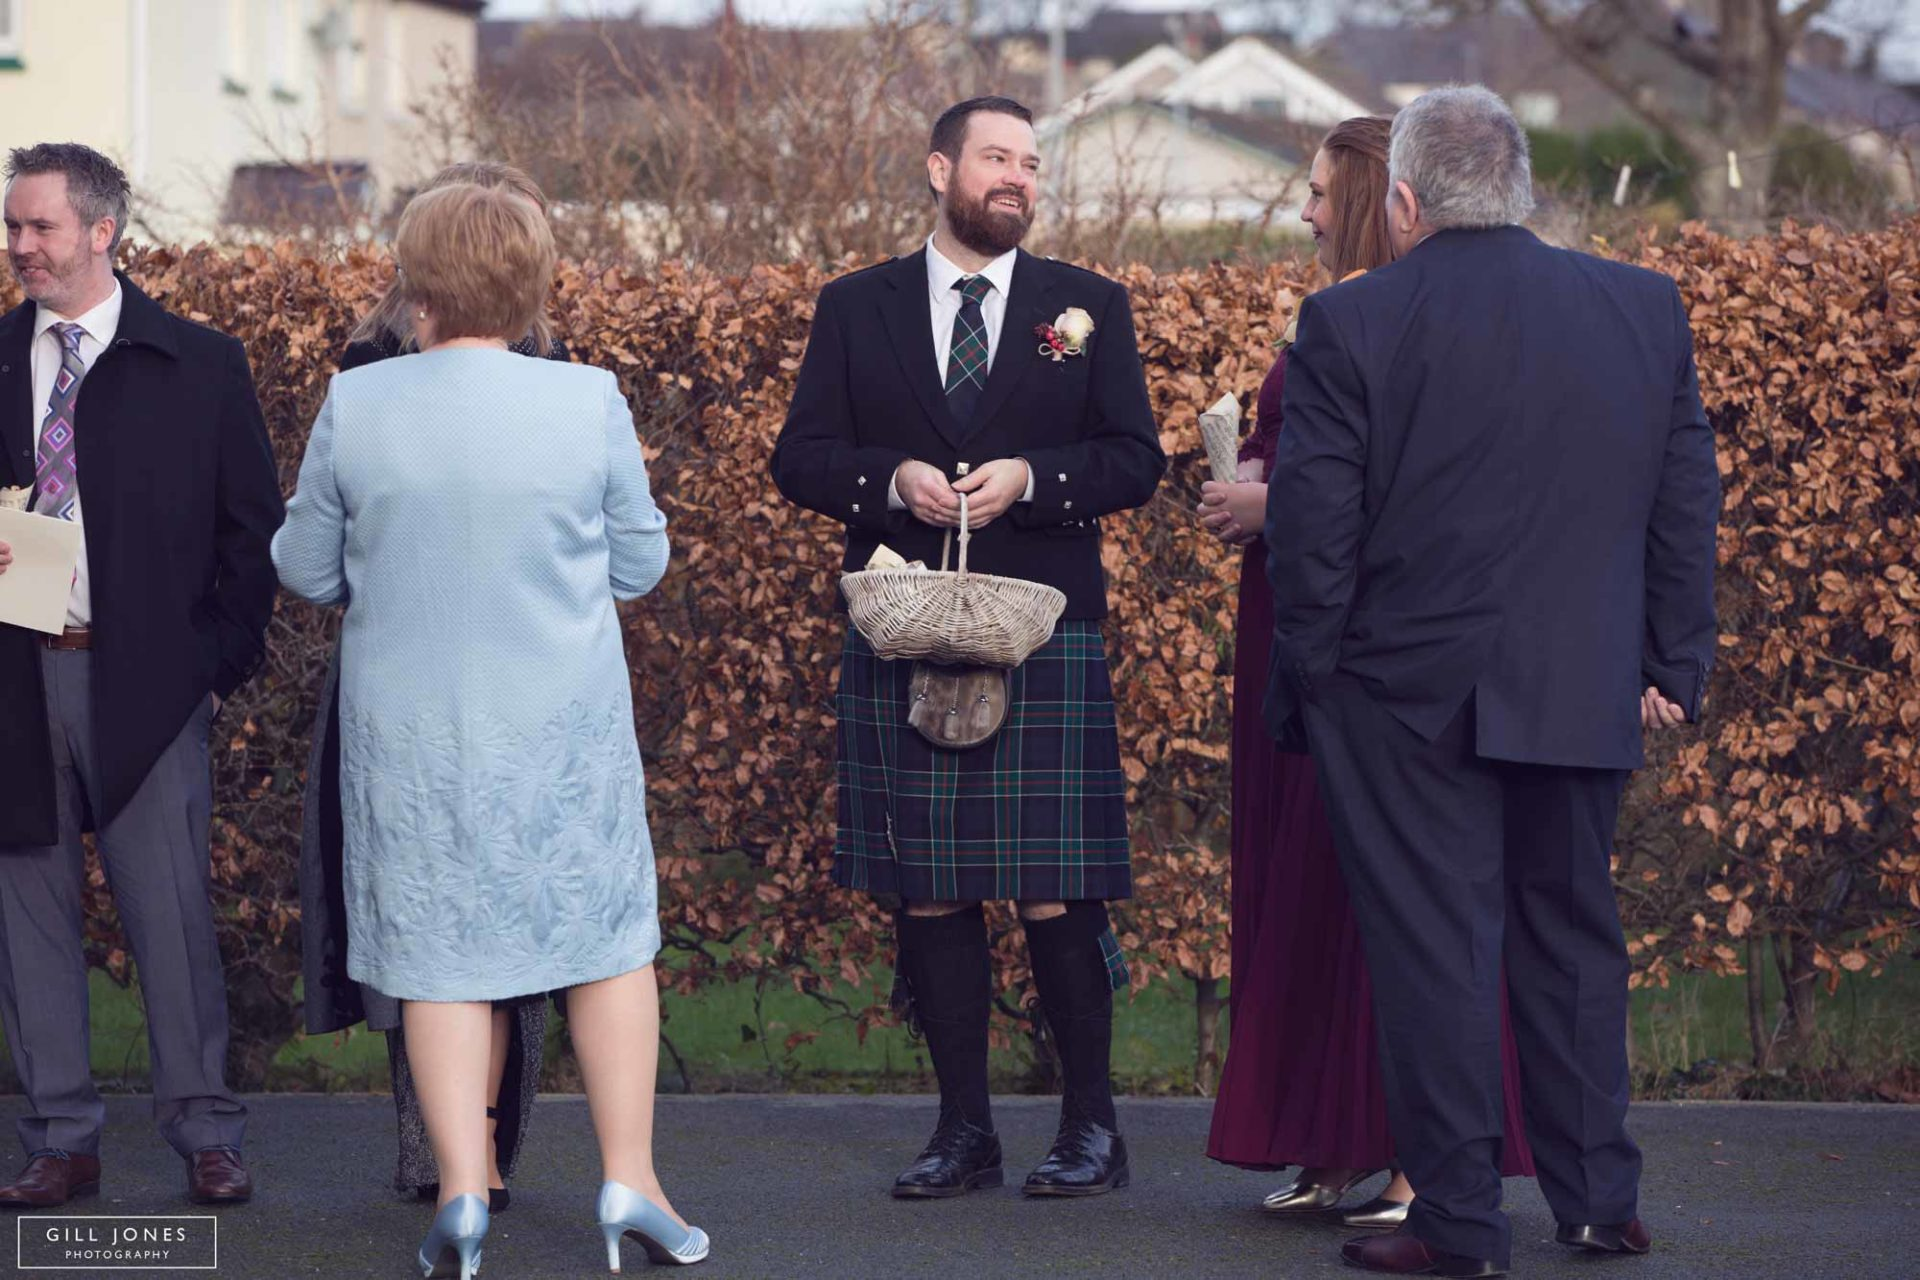 a groomsman holding a basket of flowers